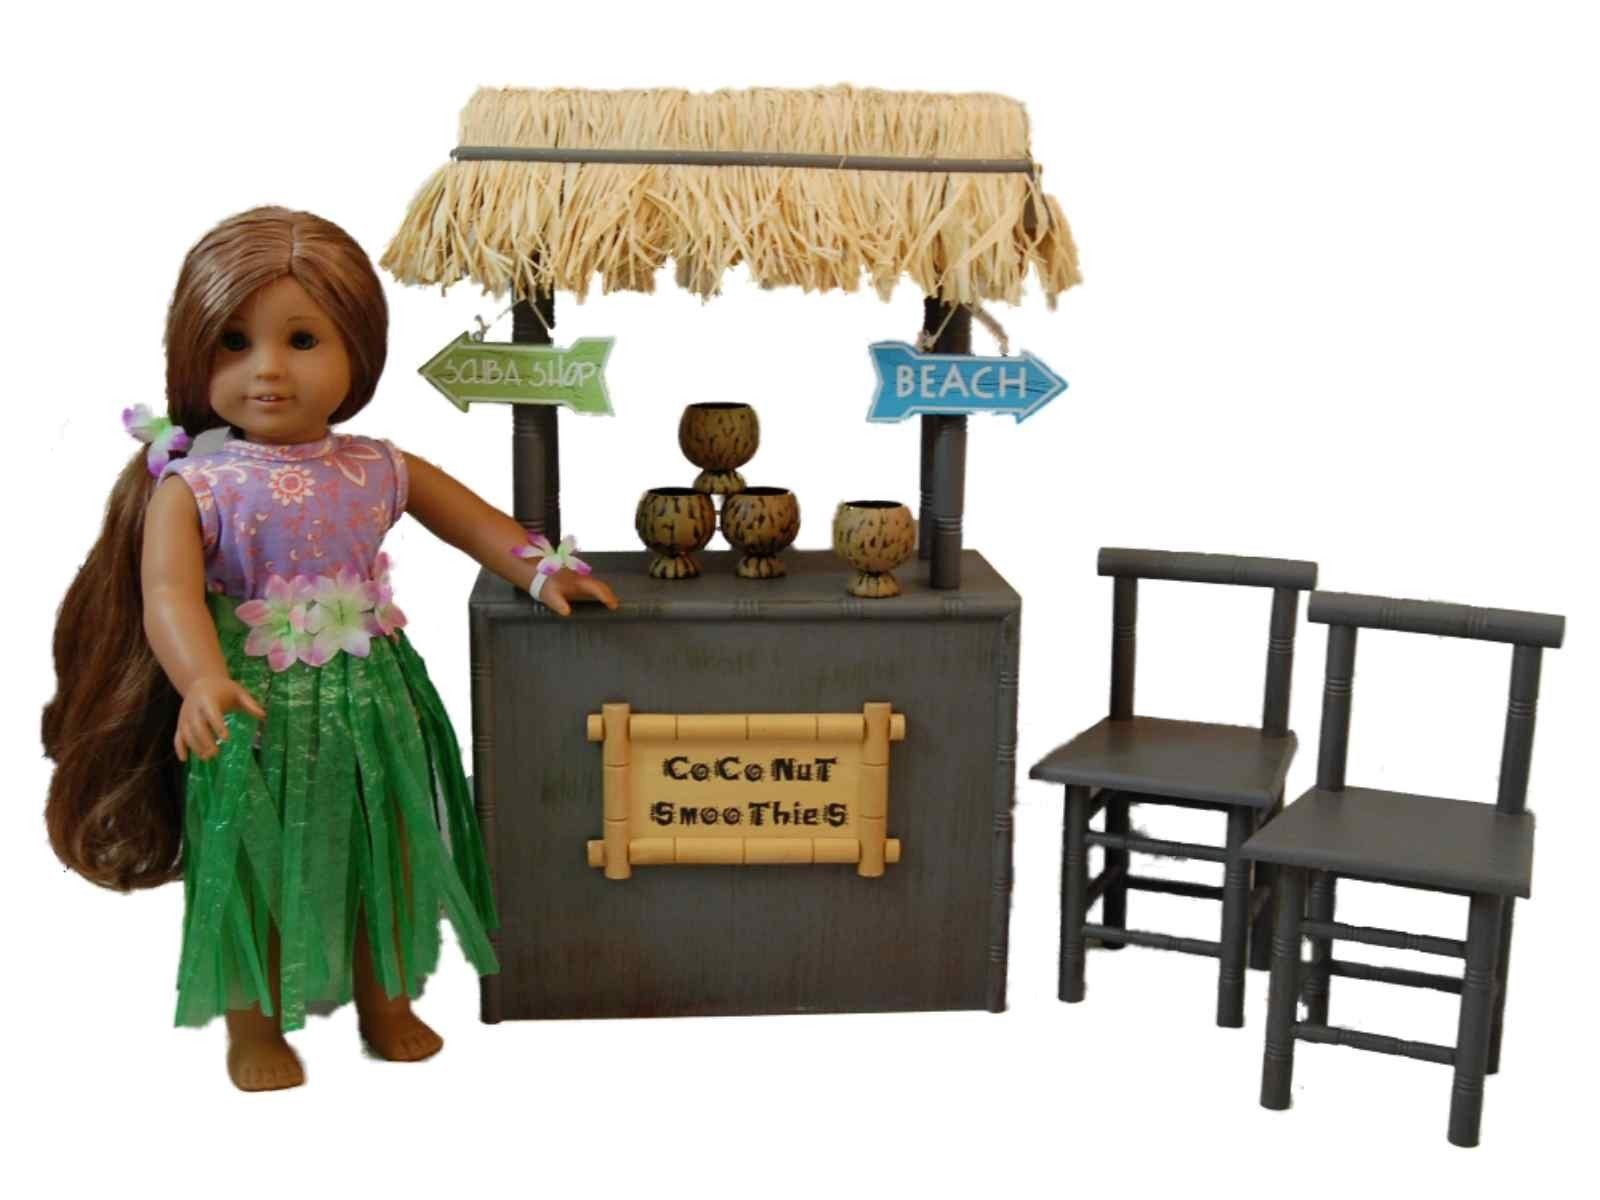 Coconut Smoothie Shaved Ice Stand Furniture Accessories For 18 American Girl Dolls